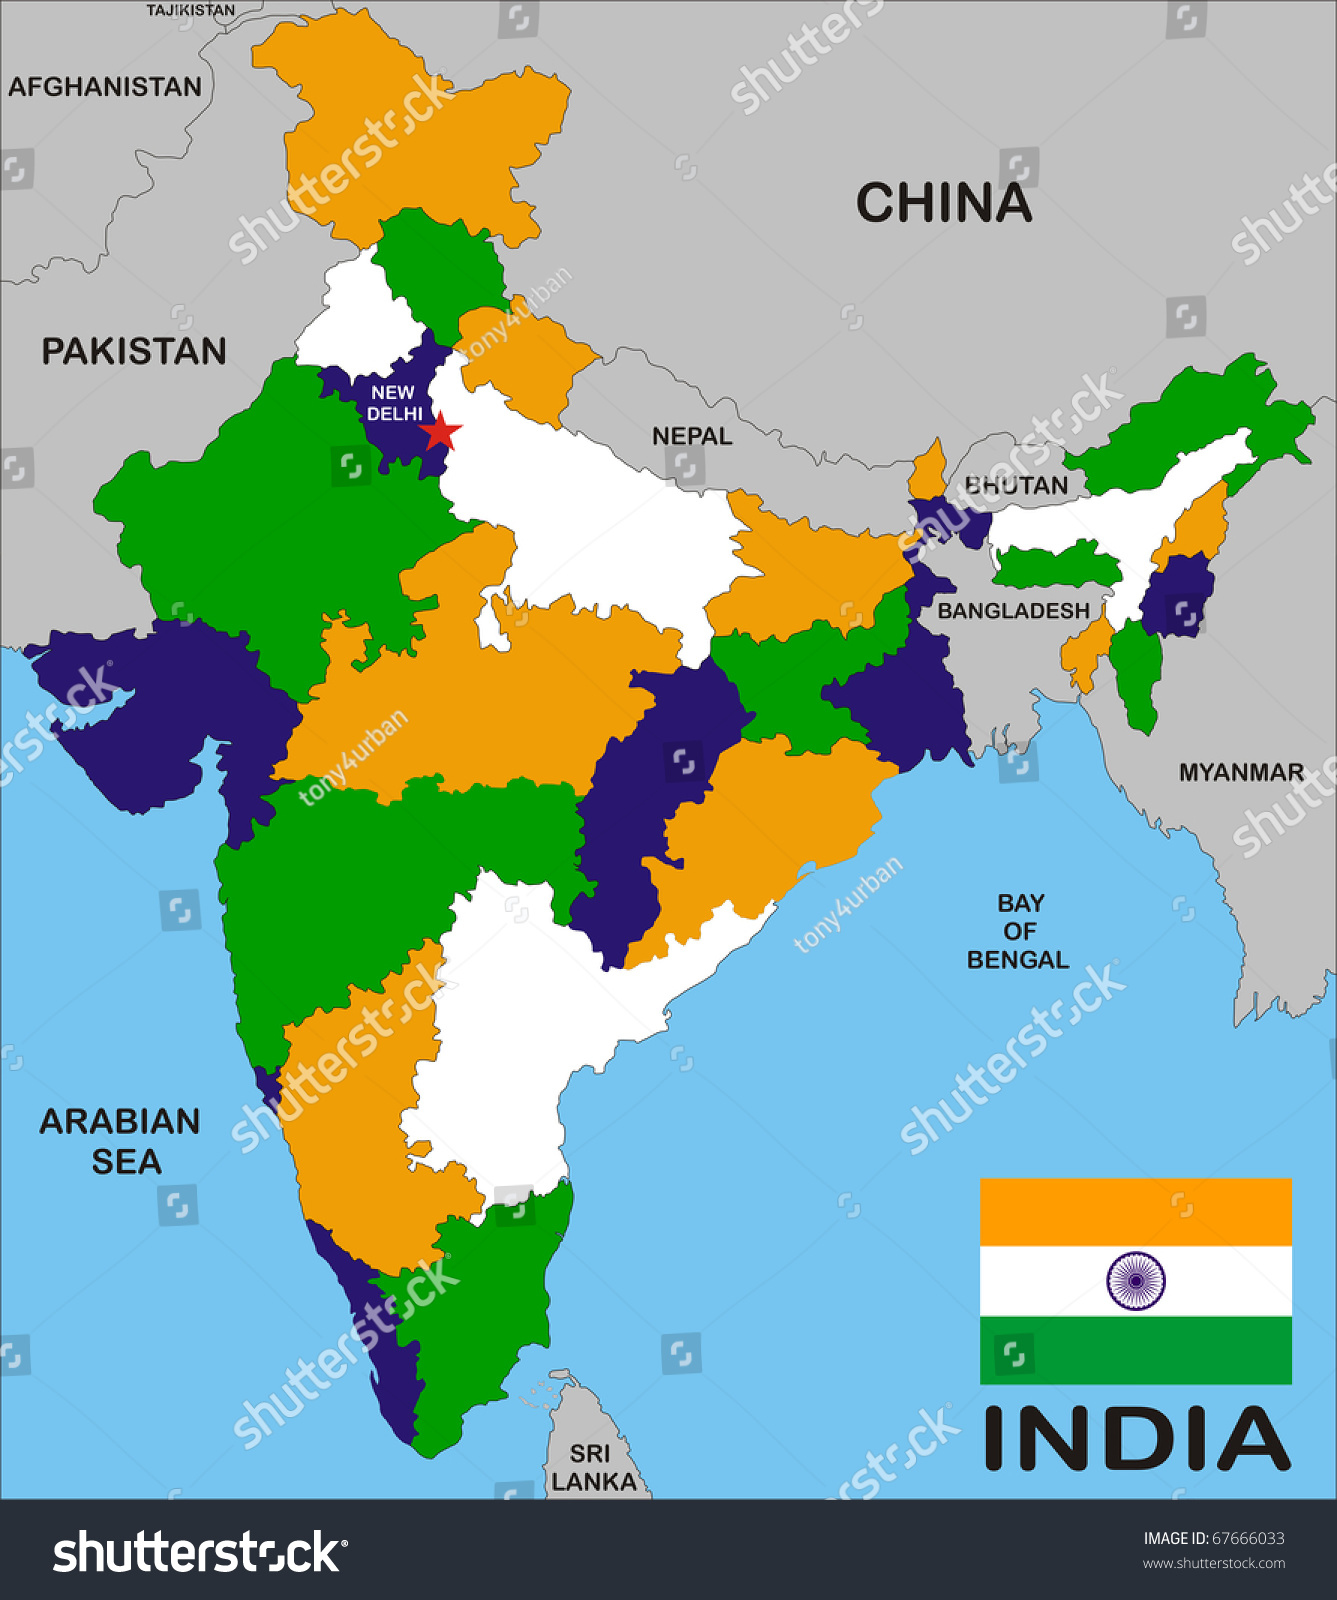 Latest India Map.Royalty Free Stock Illustration Of India Map States Boundary Flag